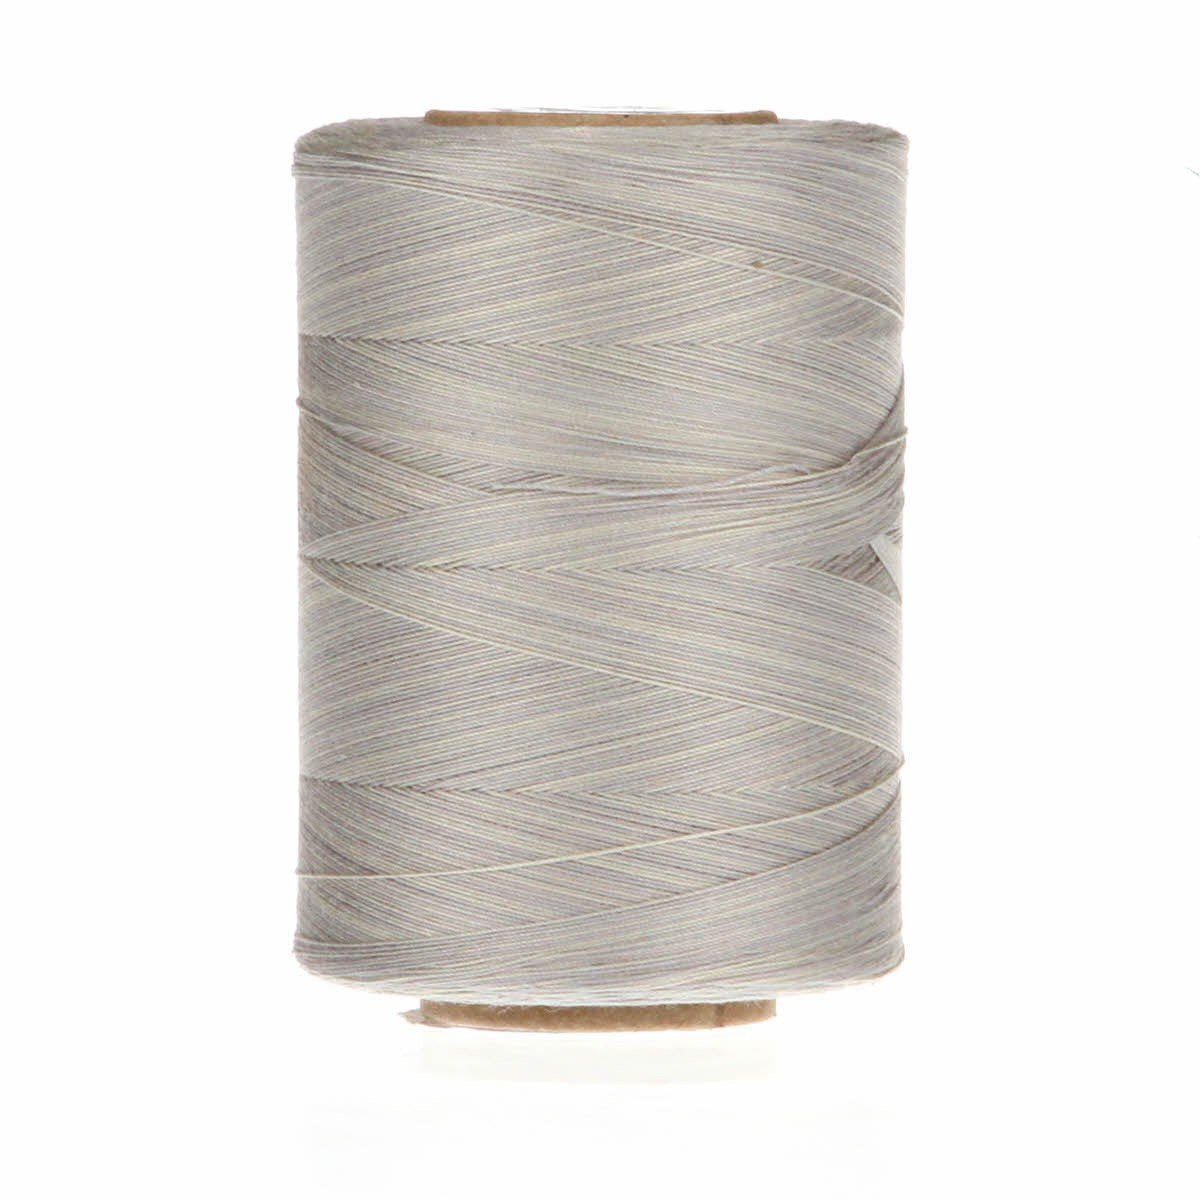 YLI Corporation Star Thread V38-0857 3-Ply 30wt T-35 Cotton Quilting & Craft Variegated Thread, 1200 yd, Silver Lining V38-857